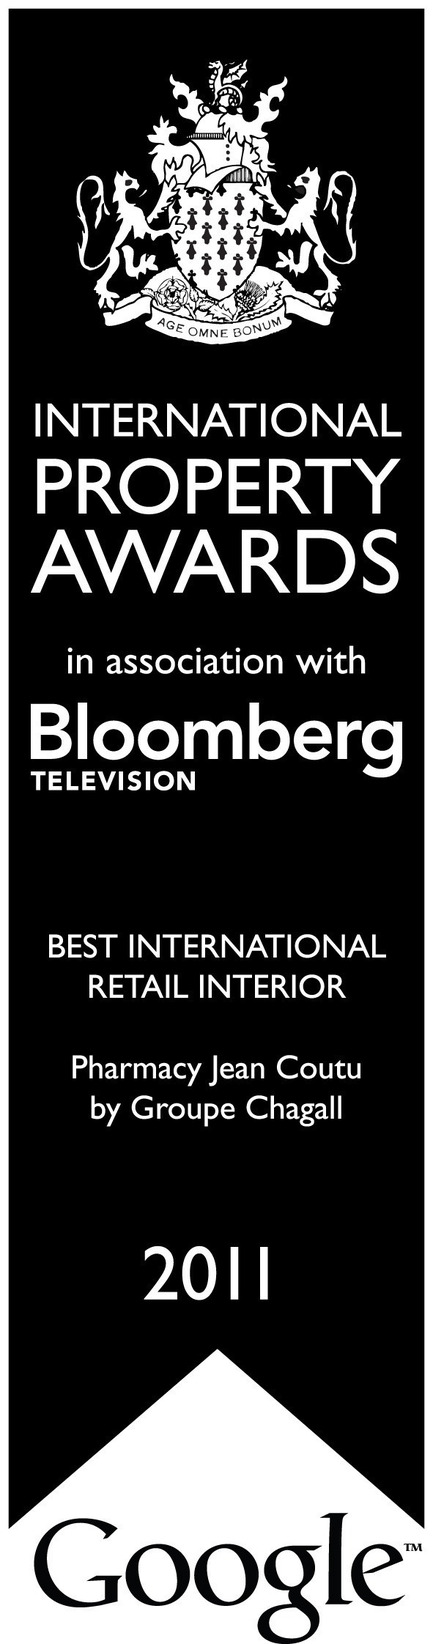 Press kit | 794-05 - Press release | Groupe Chagall won Best International Retail Interior At The International Property Awards Winners in London - Chagall Design - Competition